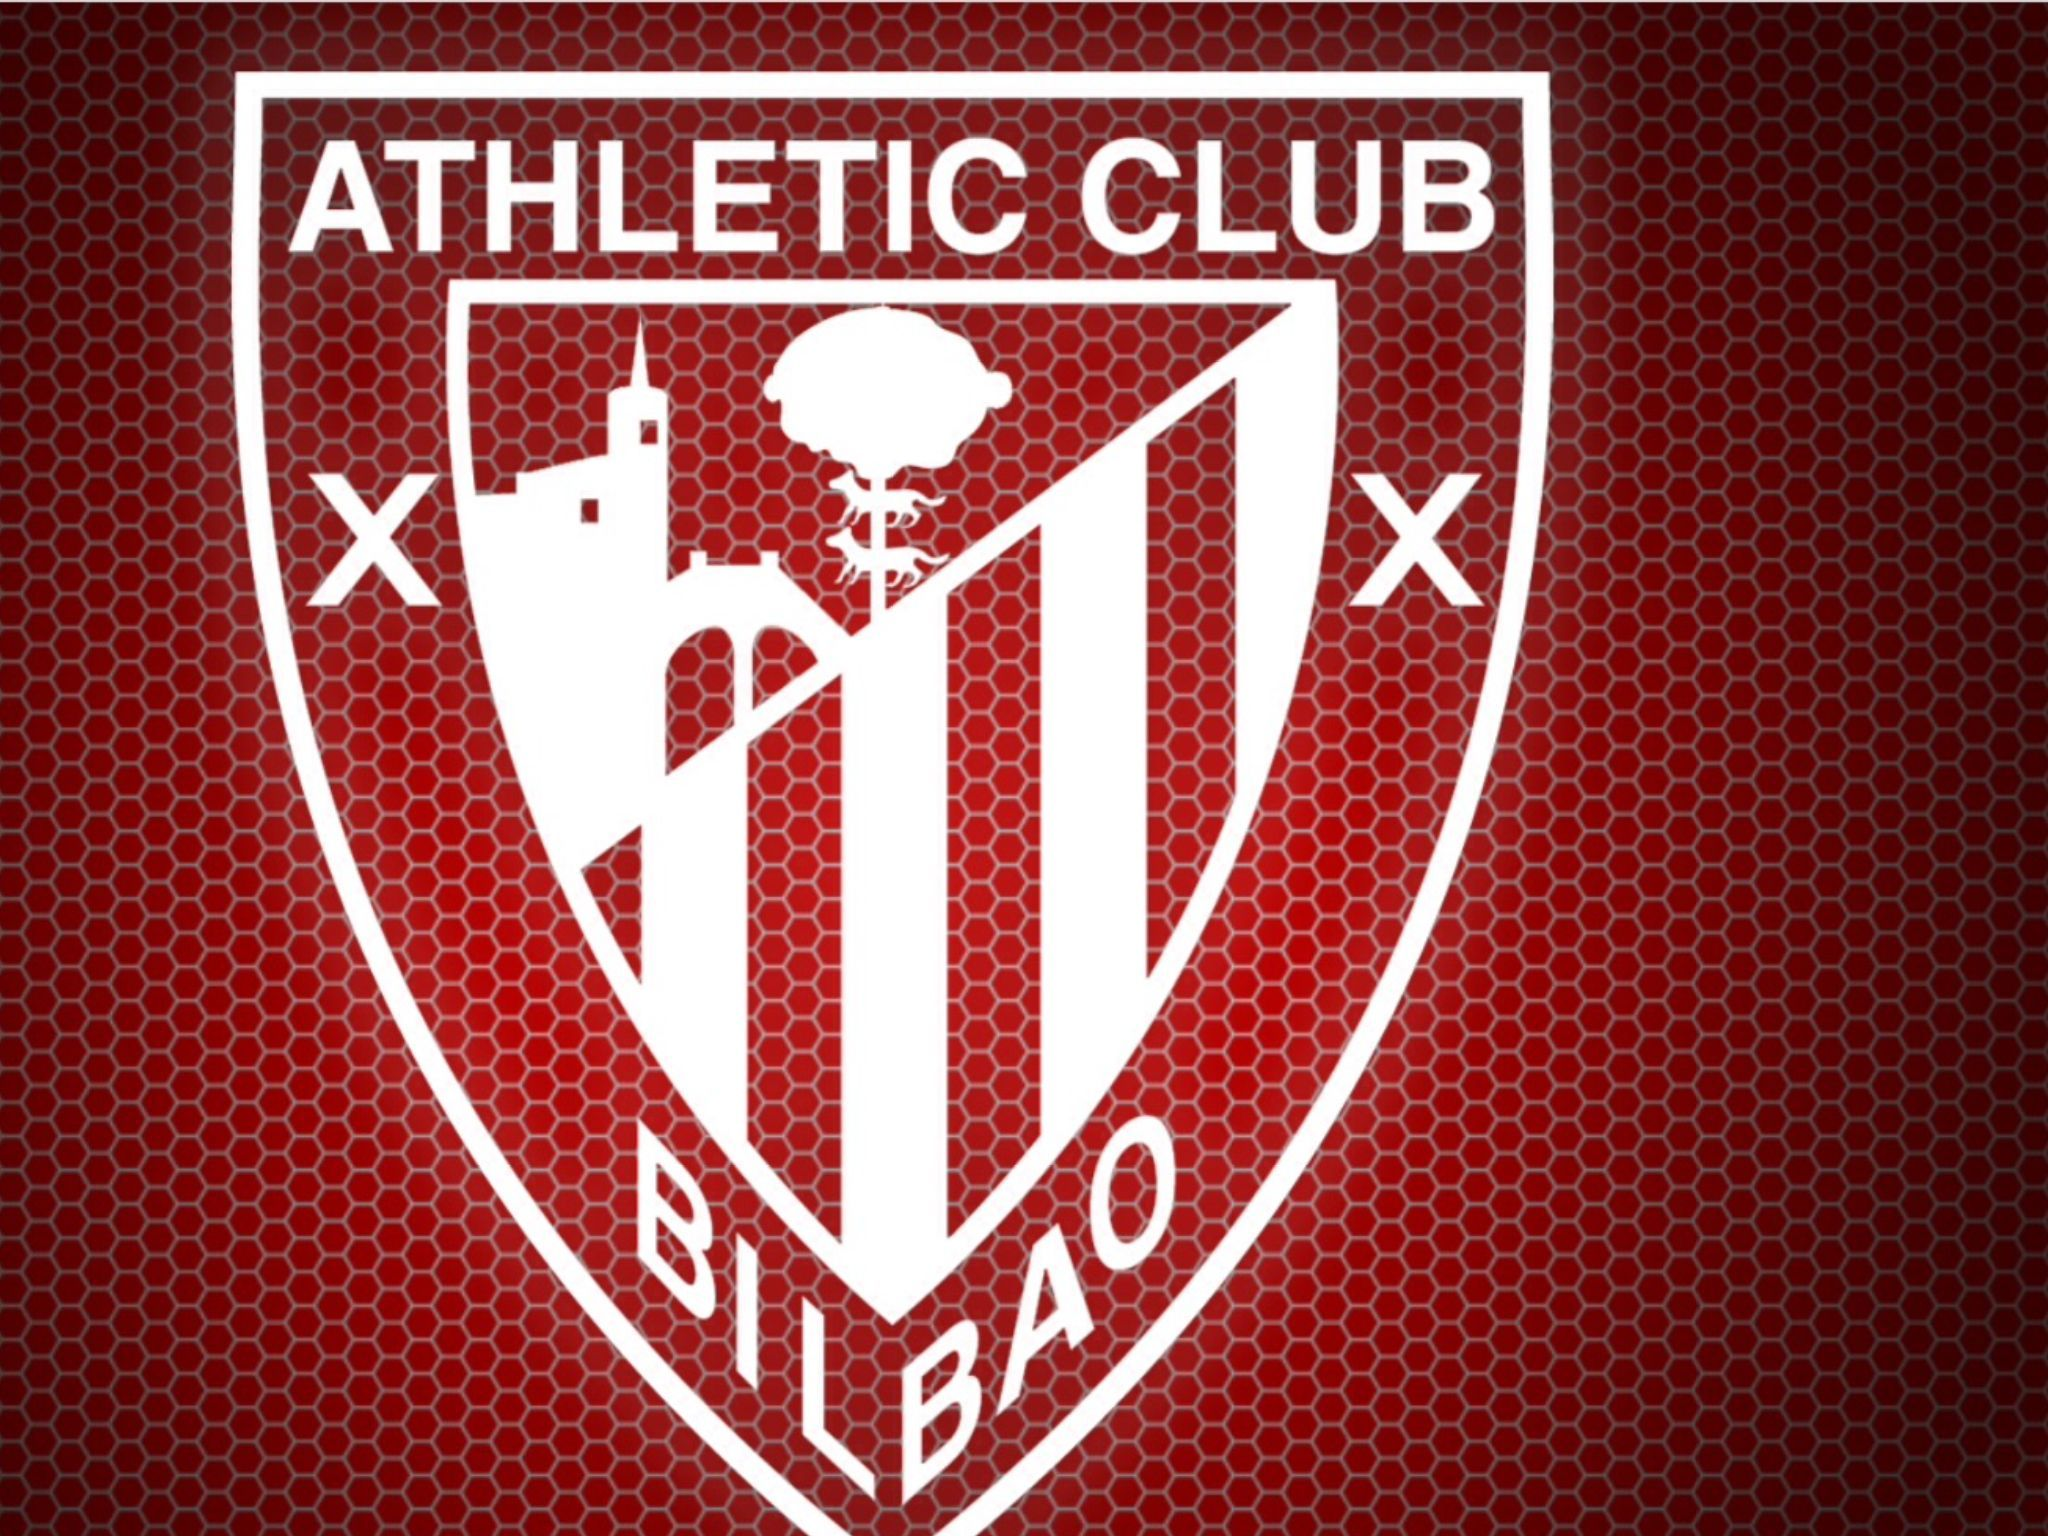 11841 - ¿Del Athletic Club hasta el fin del mundo?